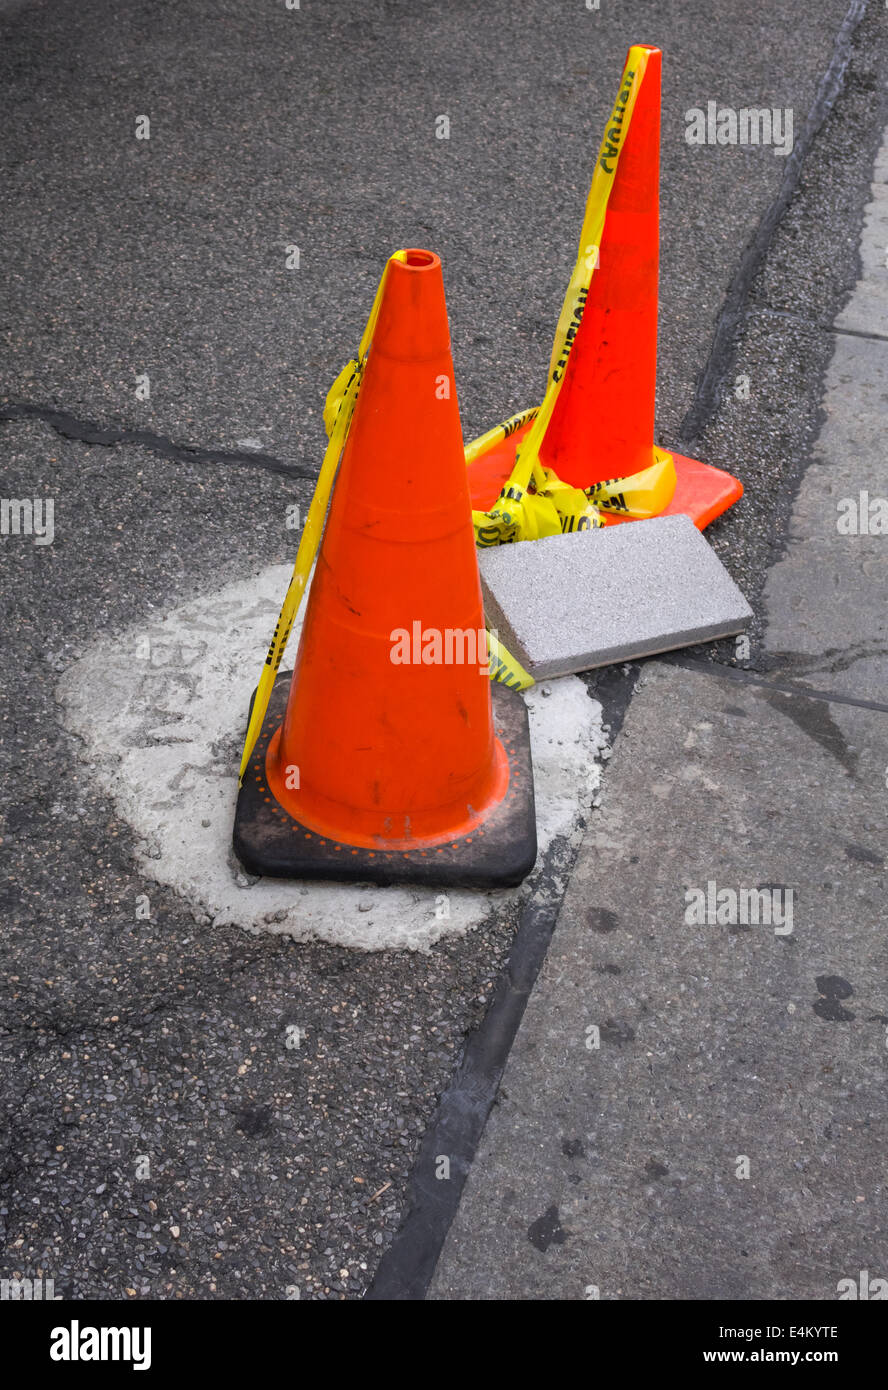 Traffic cones set up to protect repair work on a New York City sidewalk - Stock Image